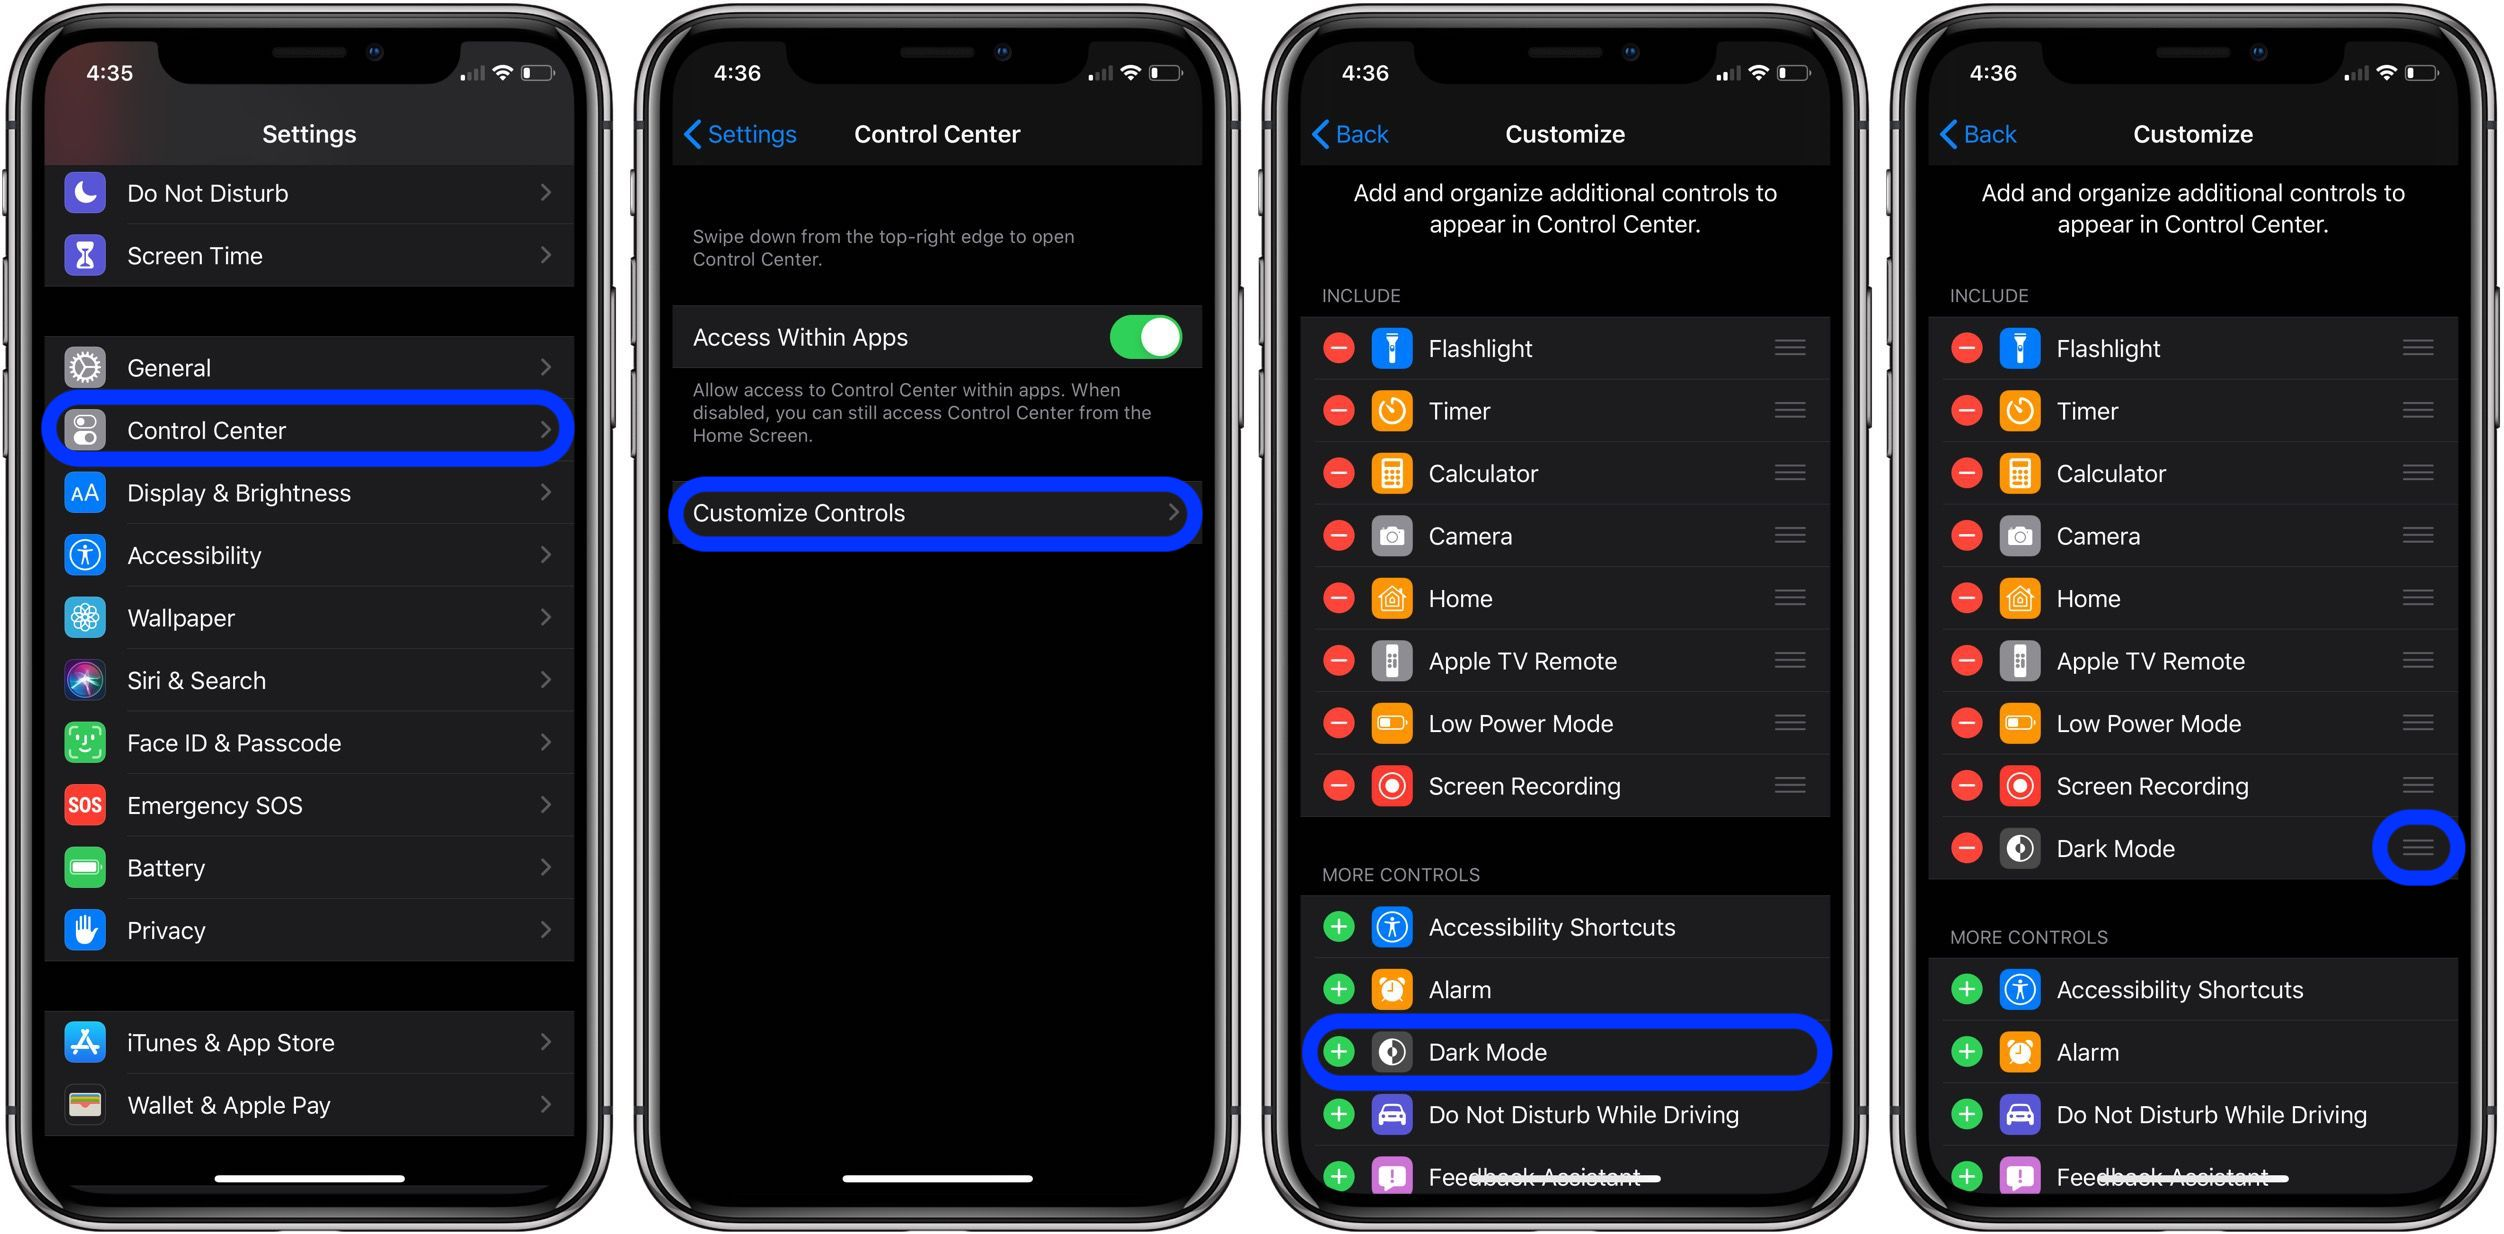 How to add Dark Mode shortcut on iPhone in iOS 13 - 9to5Mac